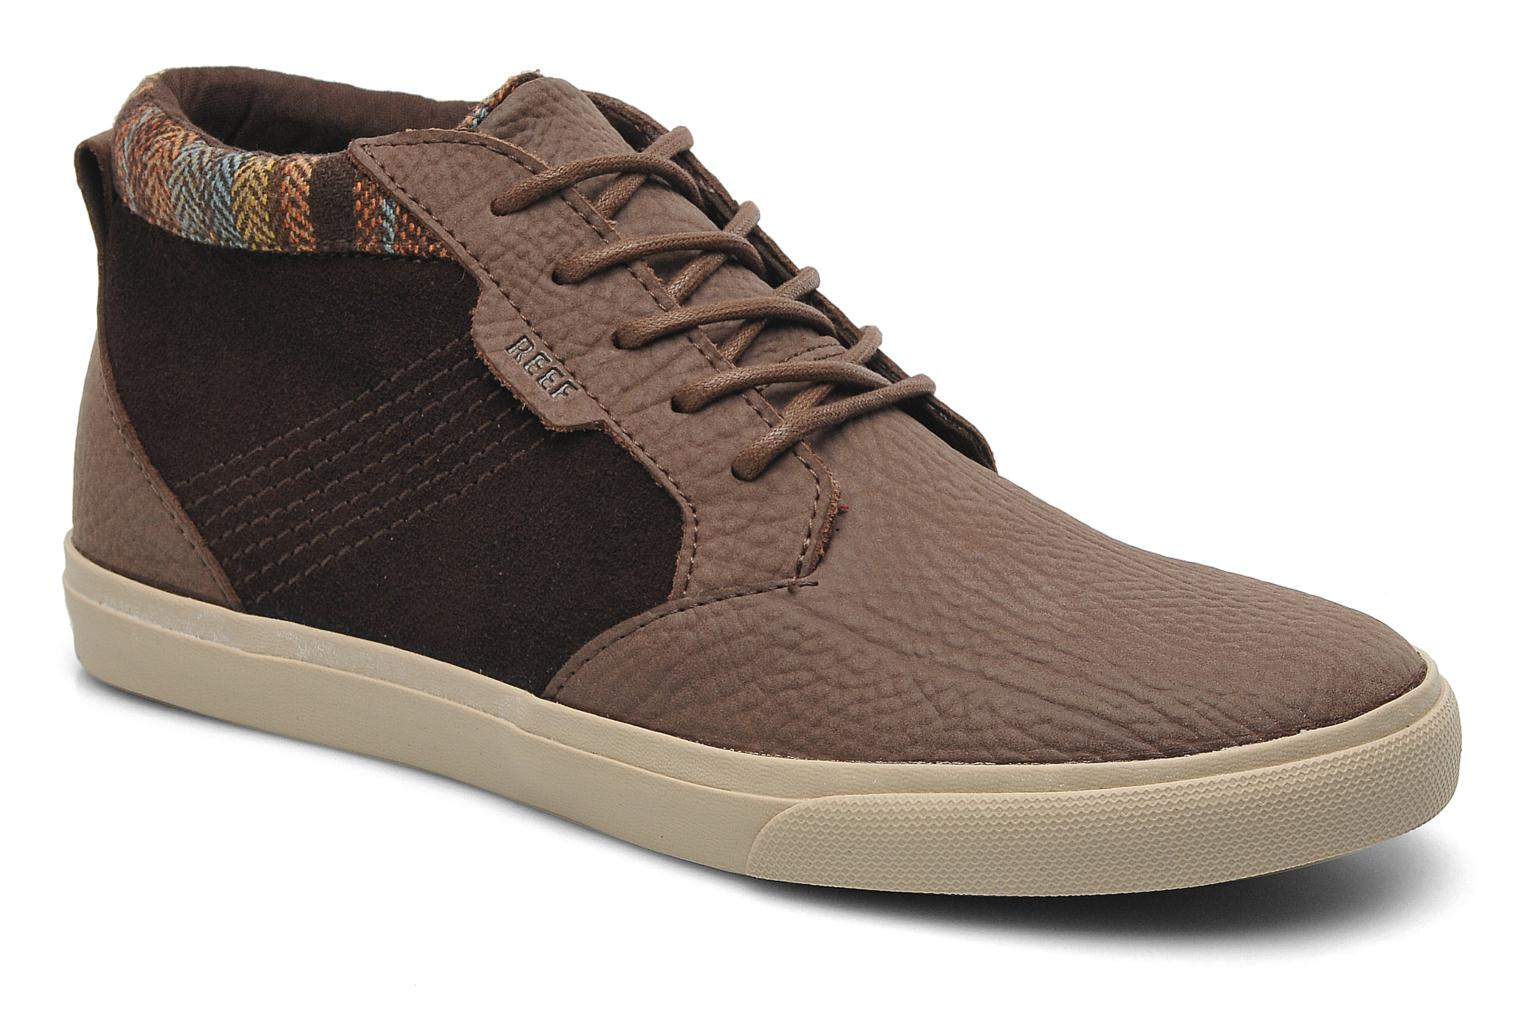 Sneakers Reef Outhaul Premium by Reef